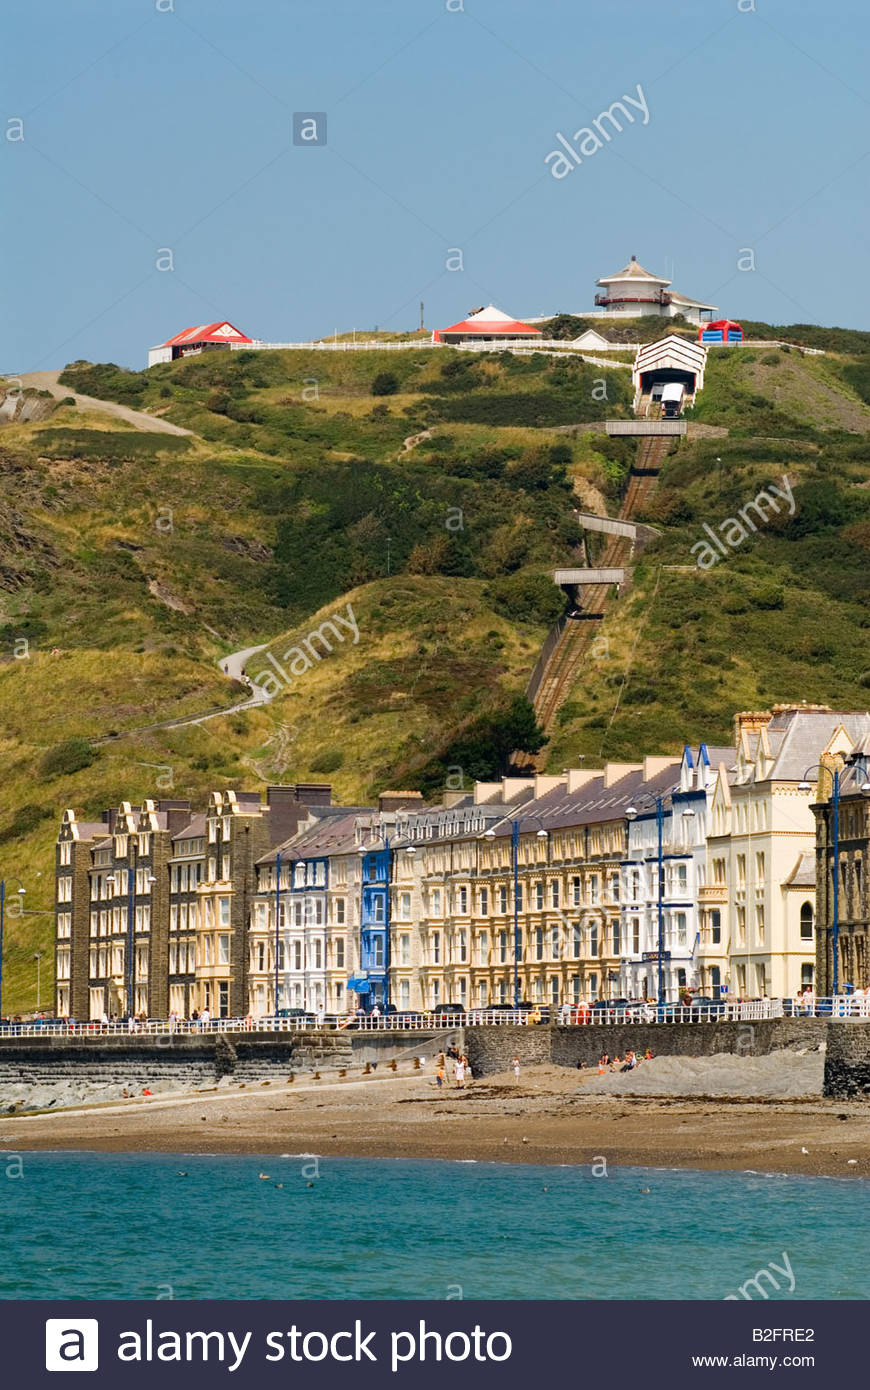 Constitution Hill Mid-Wales, Aberystwyth Ceredigion west coast mid Wales UK Cliff electric ...